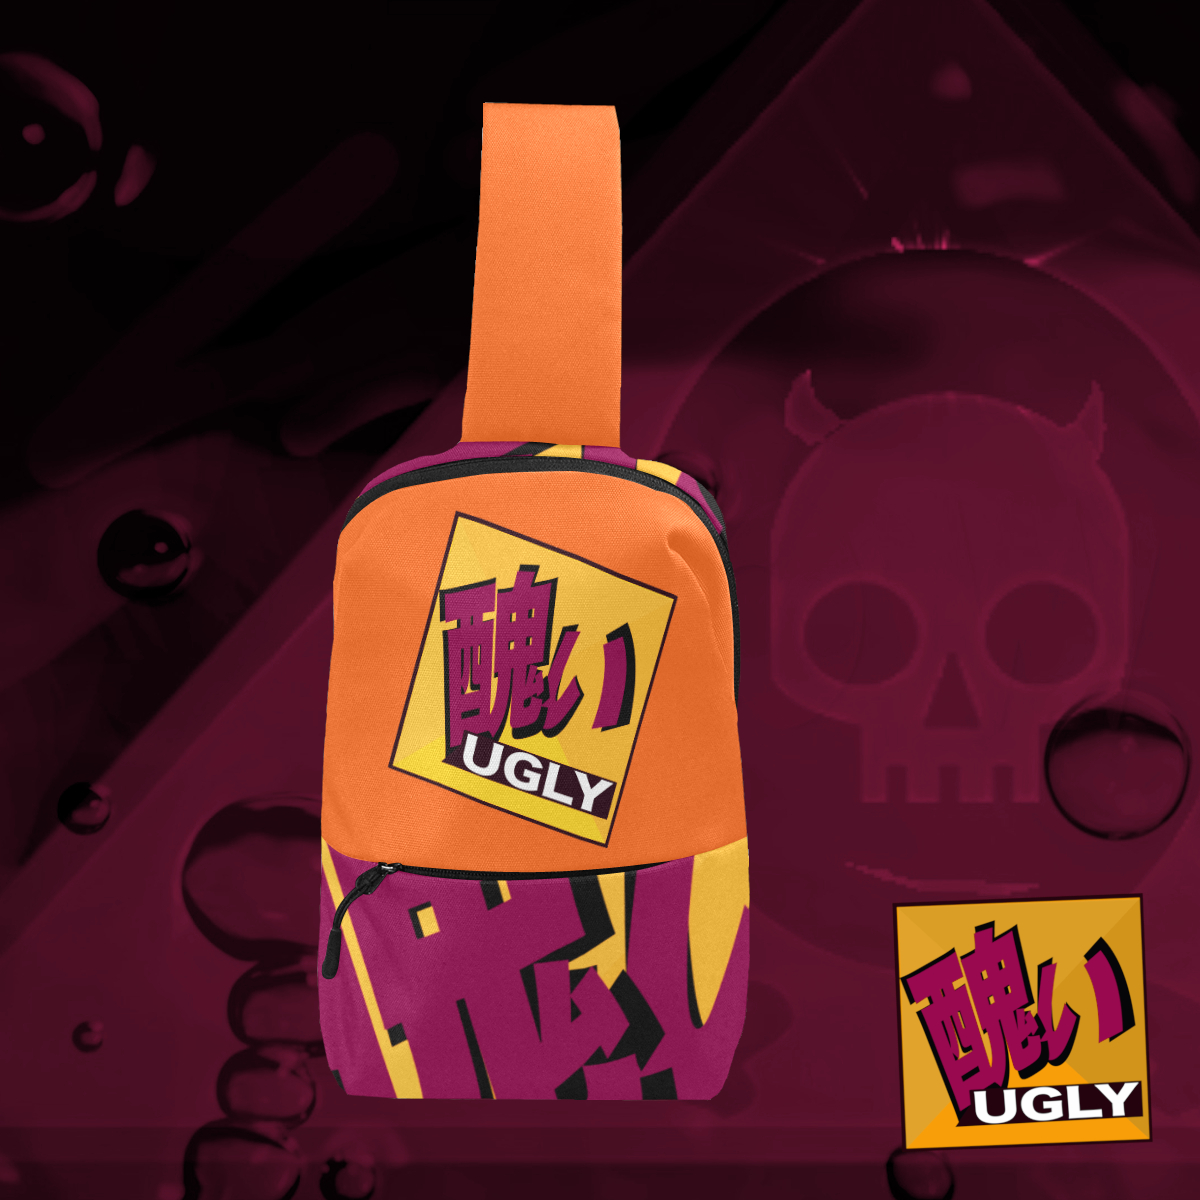 UGLY logo chest bag The Lowest of Low Tang